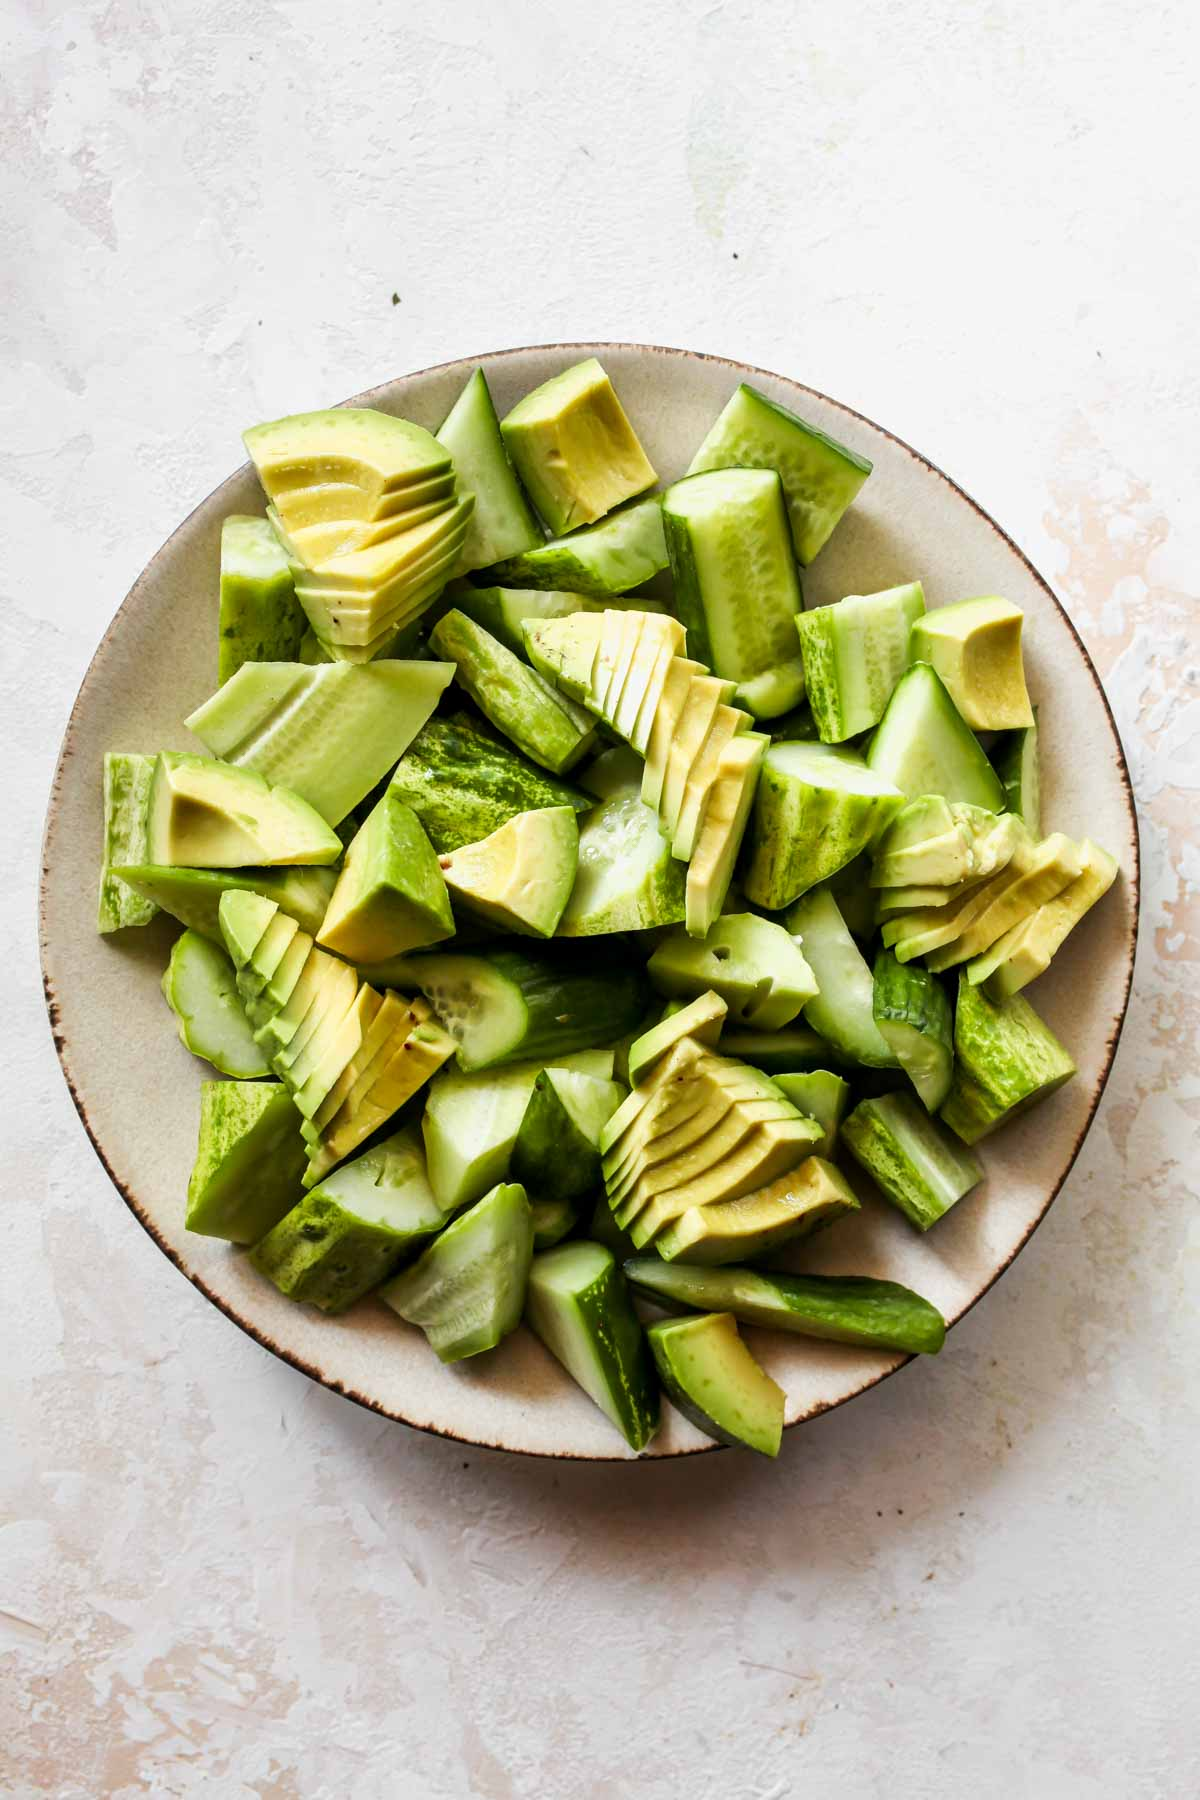 Cucumber and avocado slices arranged on a platter